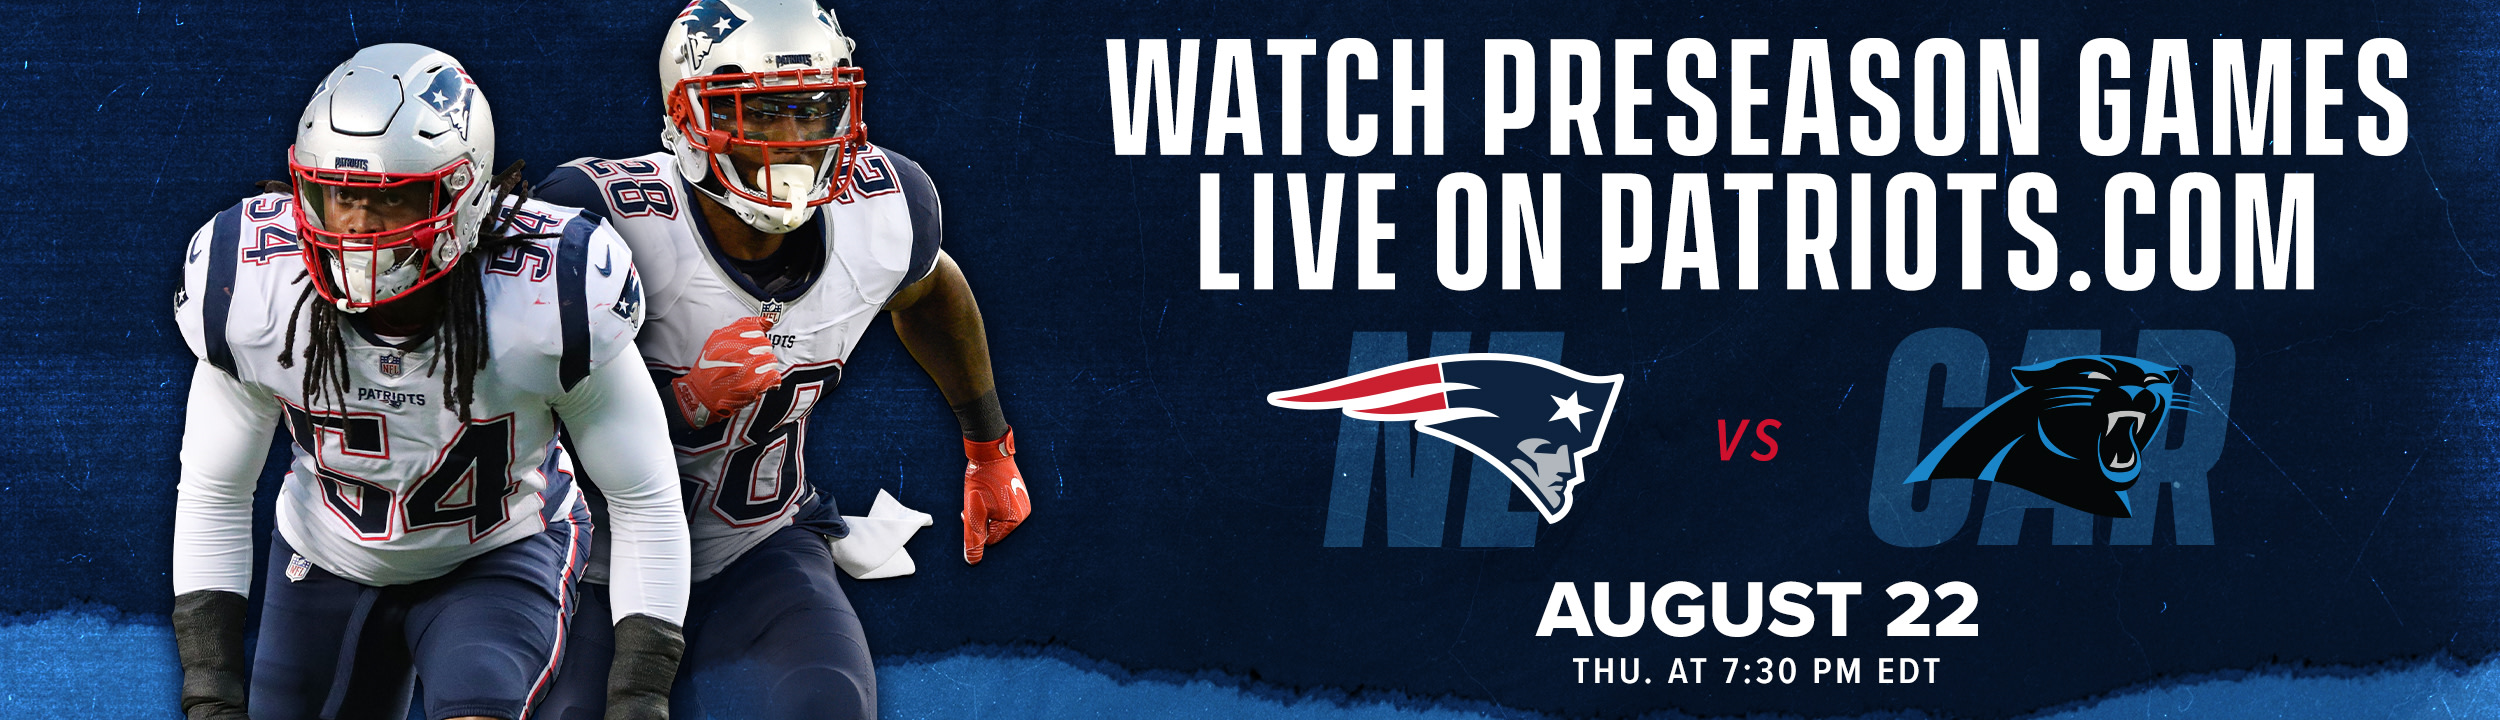 5a90dcd9 Official website of the New England Patriots